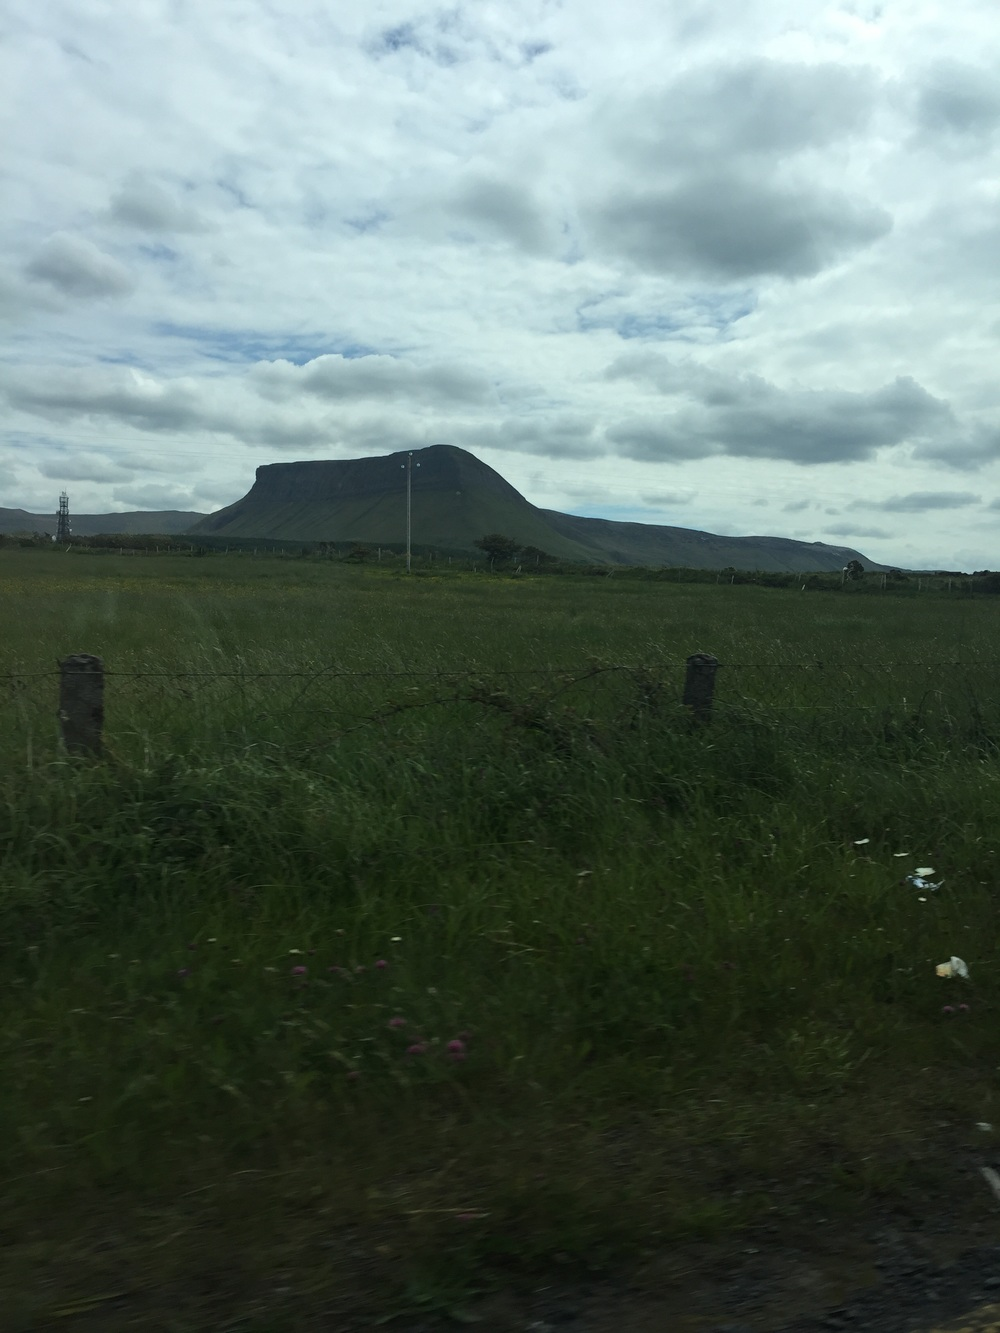 Ben Bulben and the Darty Mountains